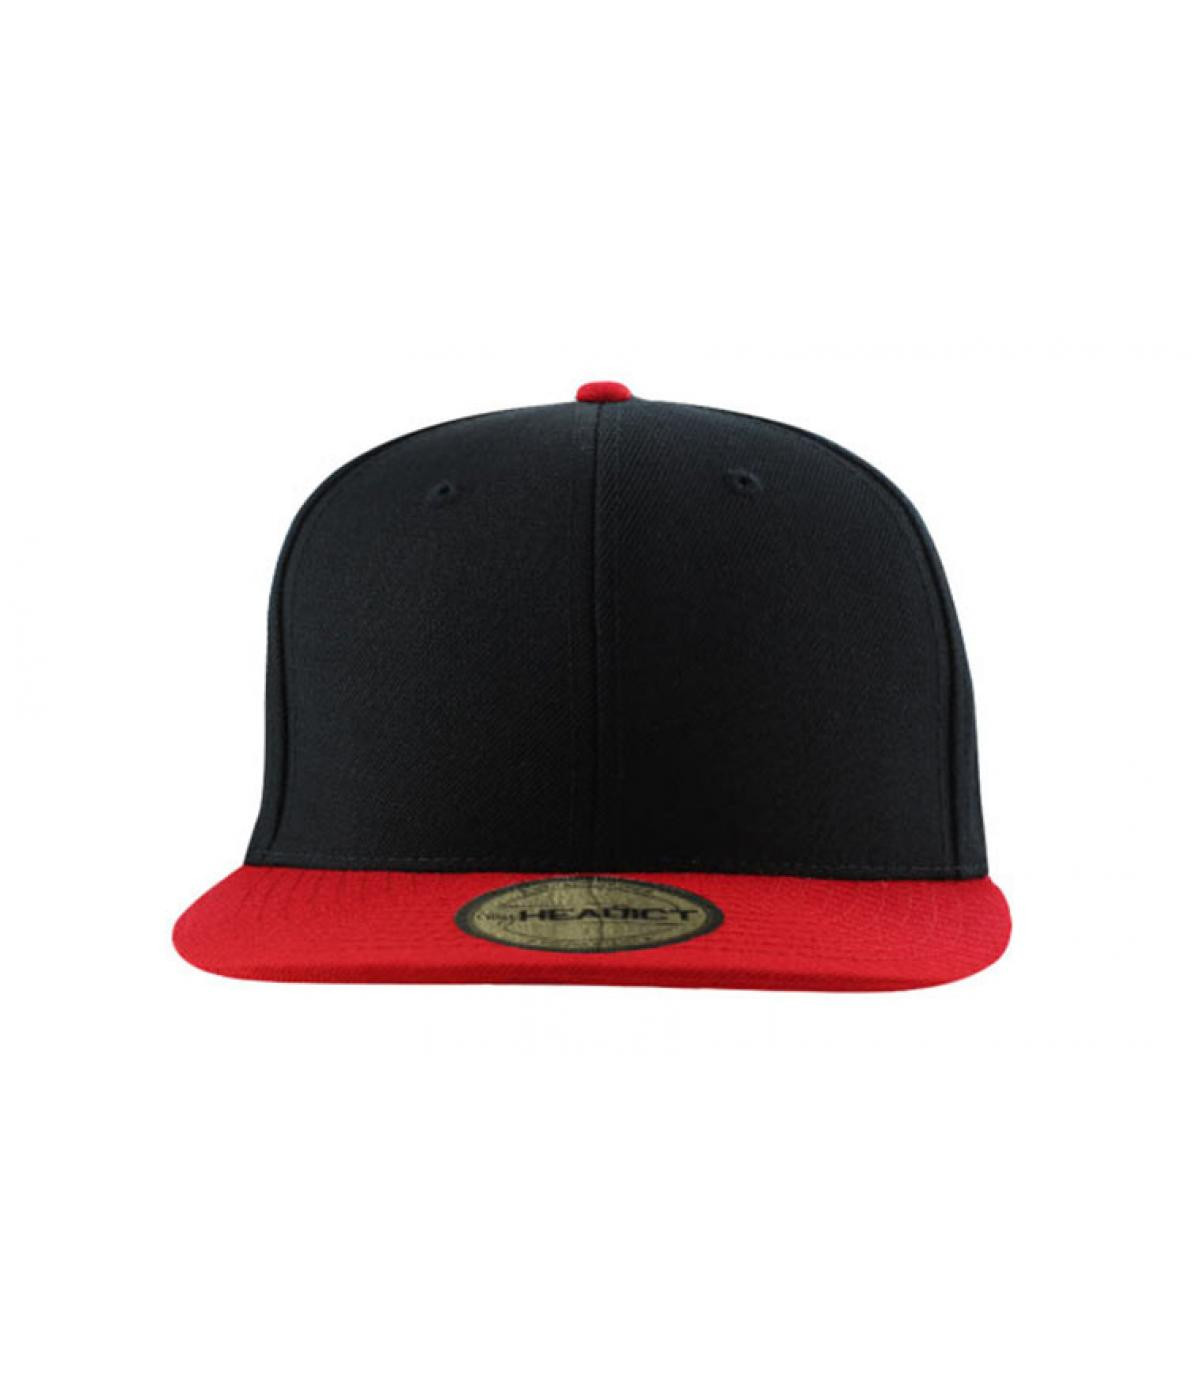 Black and red snapback for kids